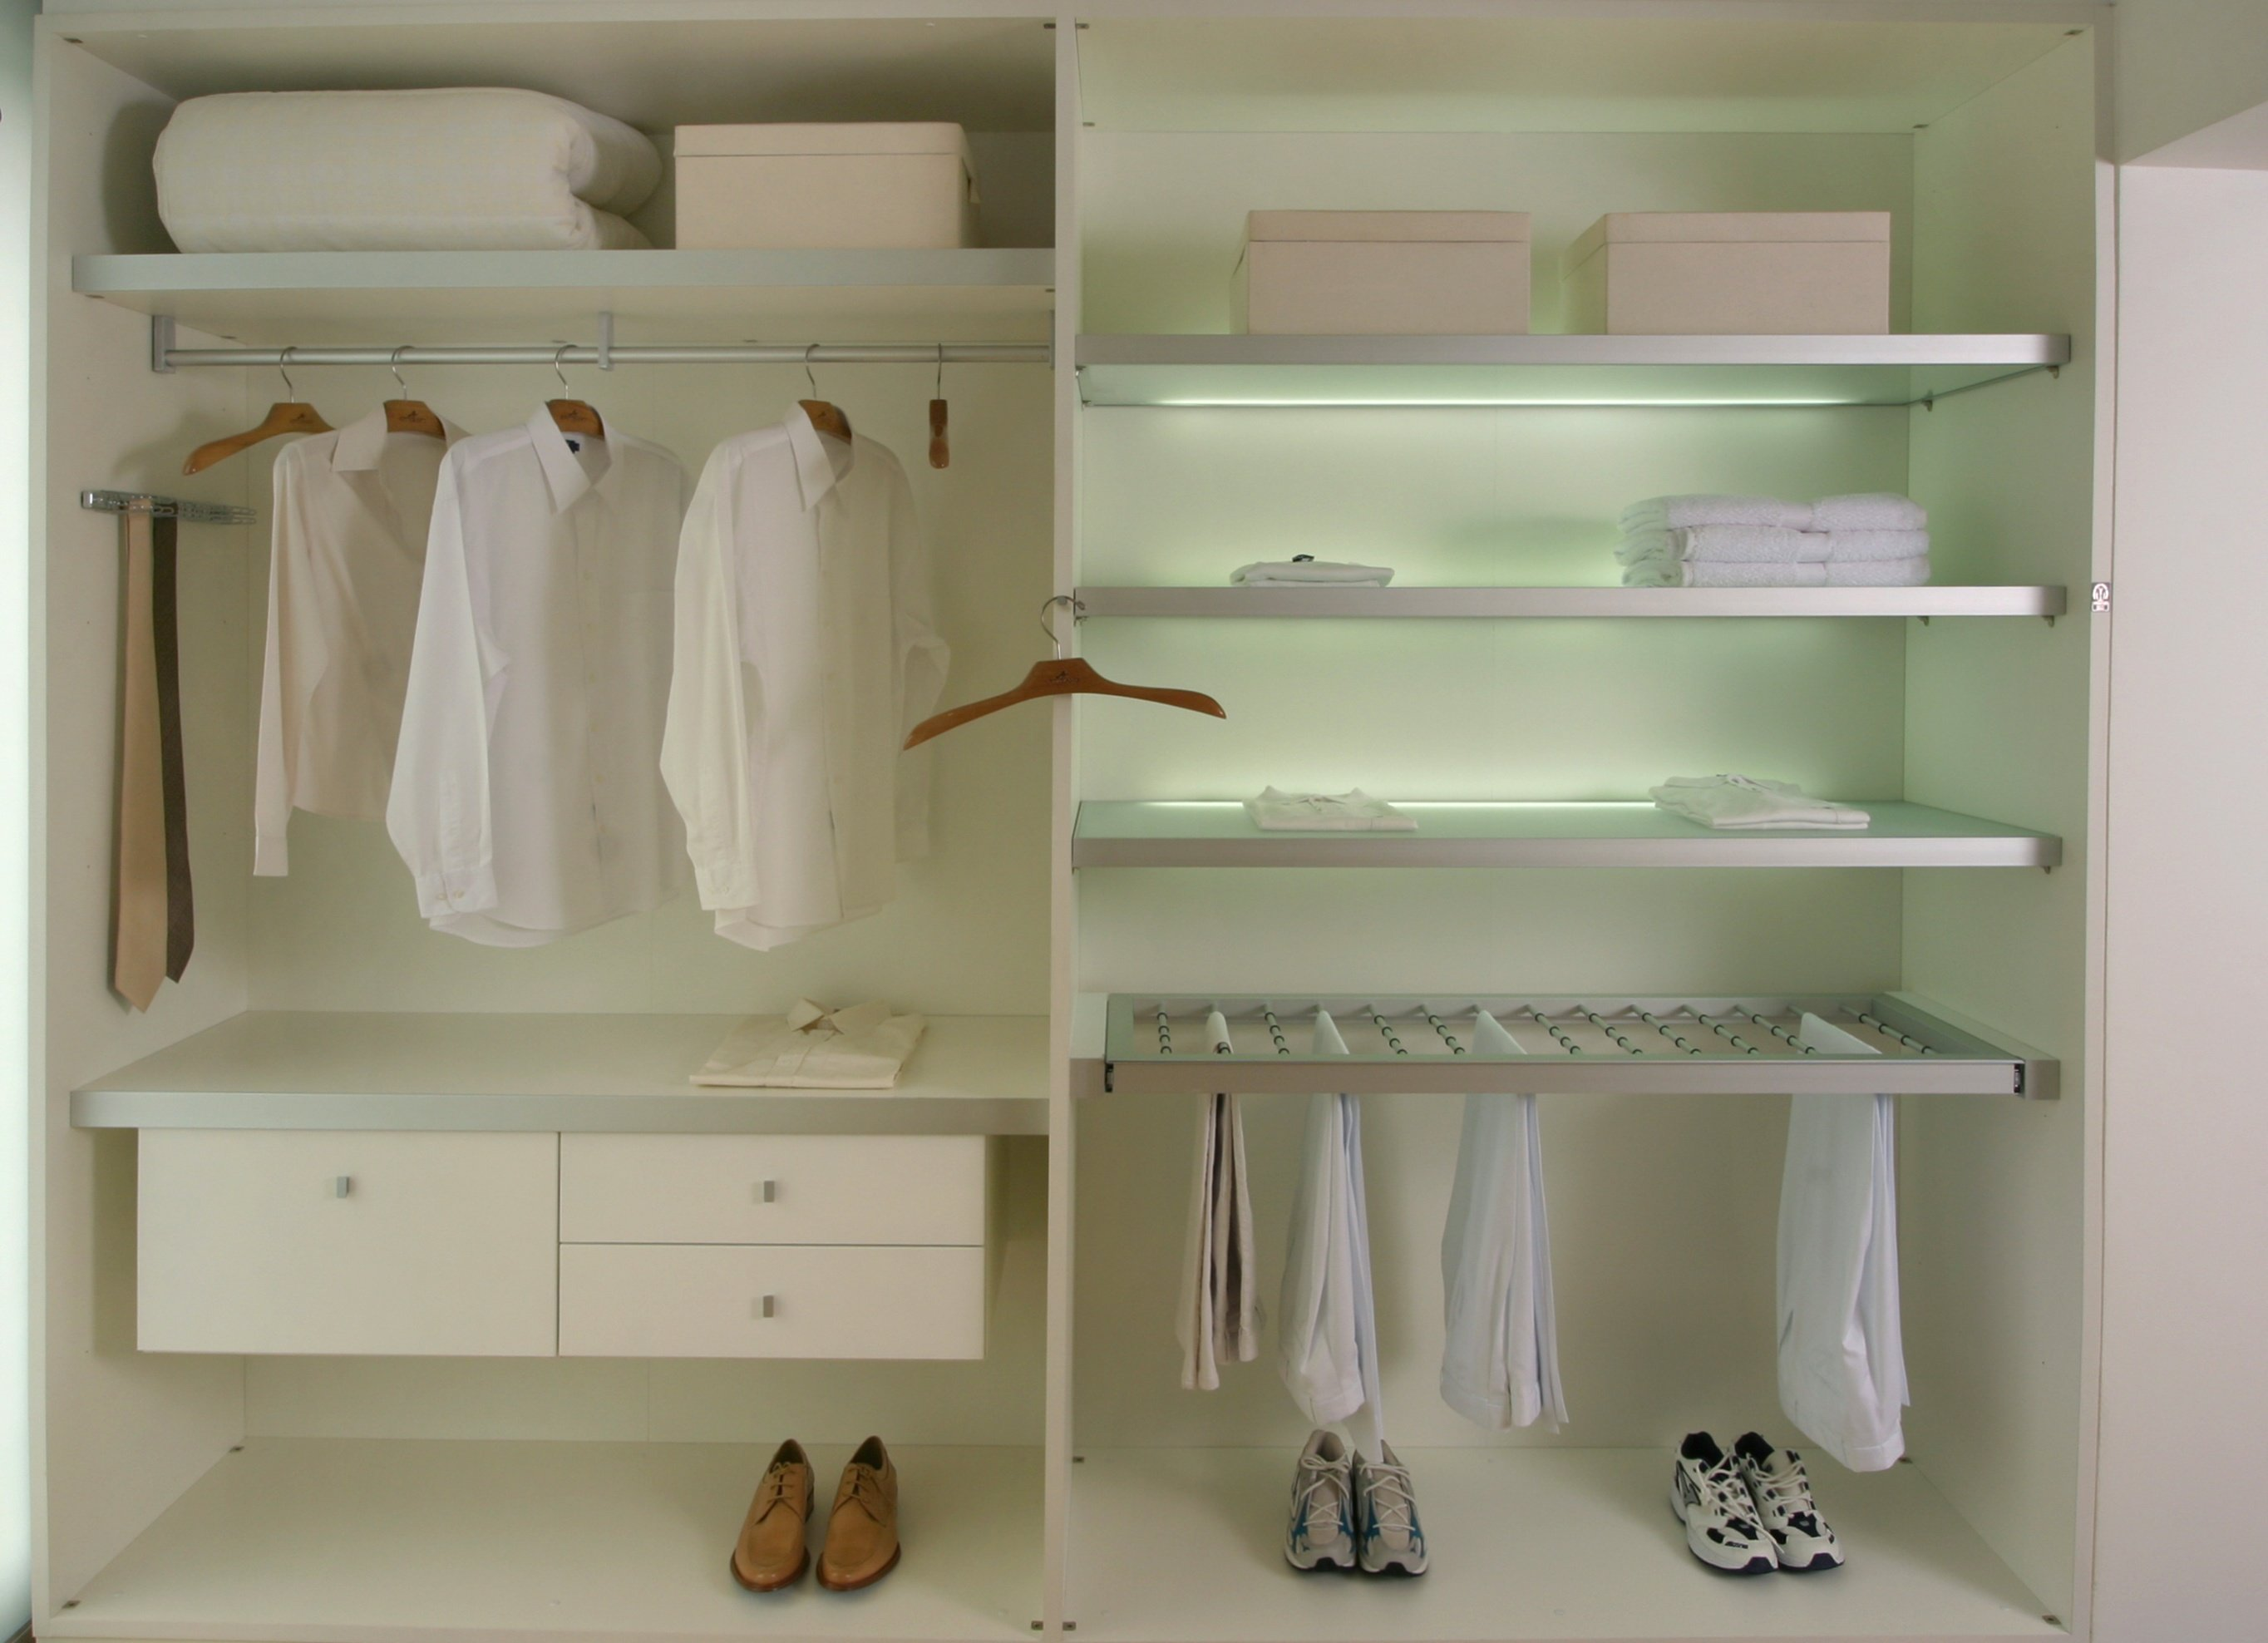 Planning For A New Walk In Closet